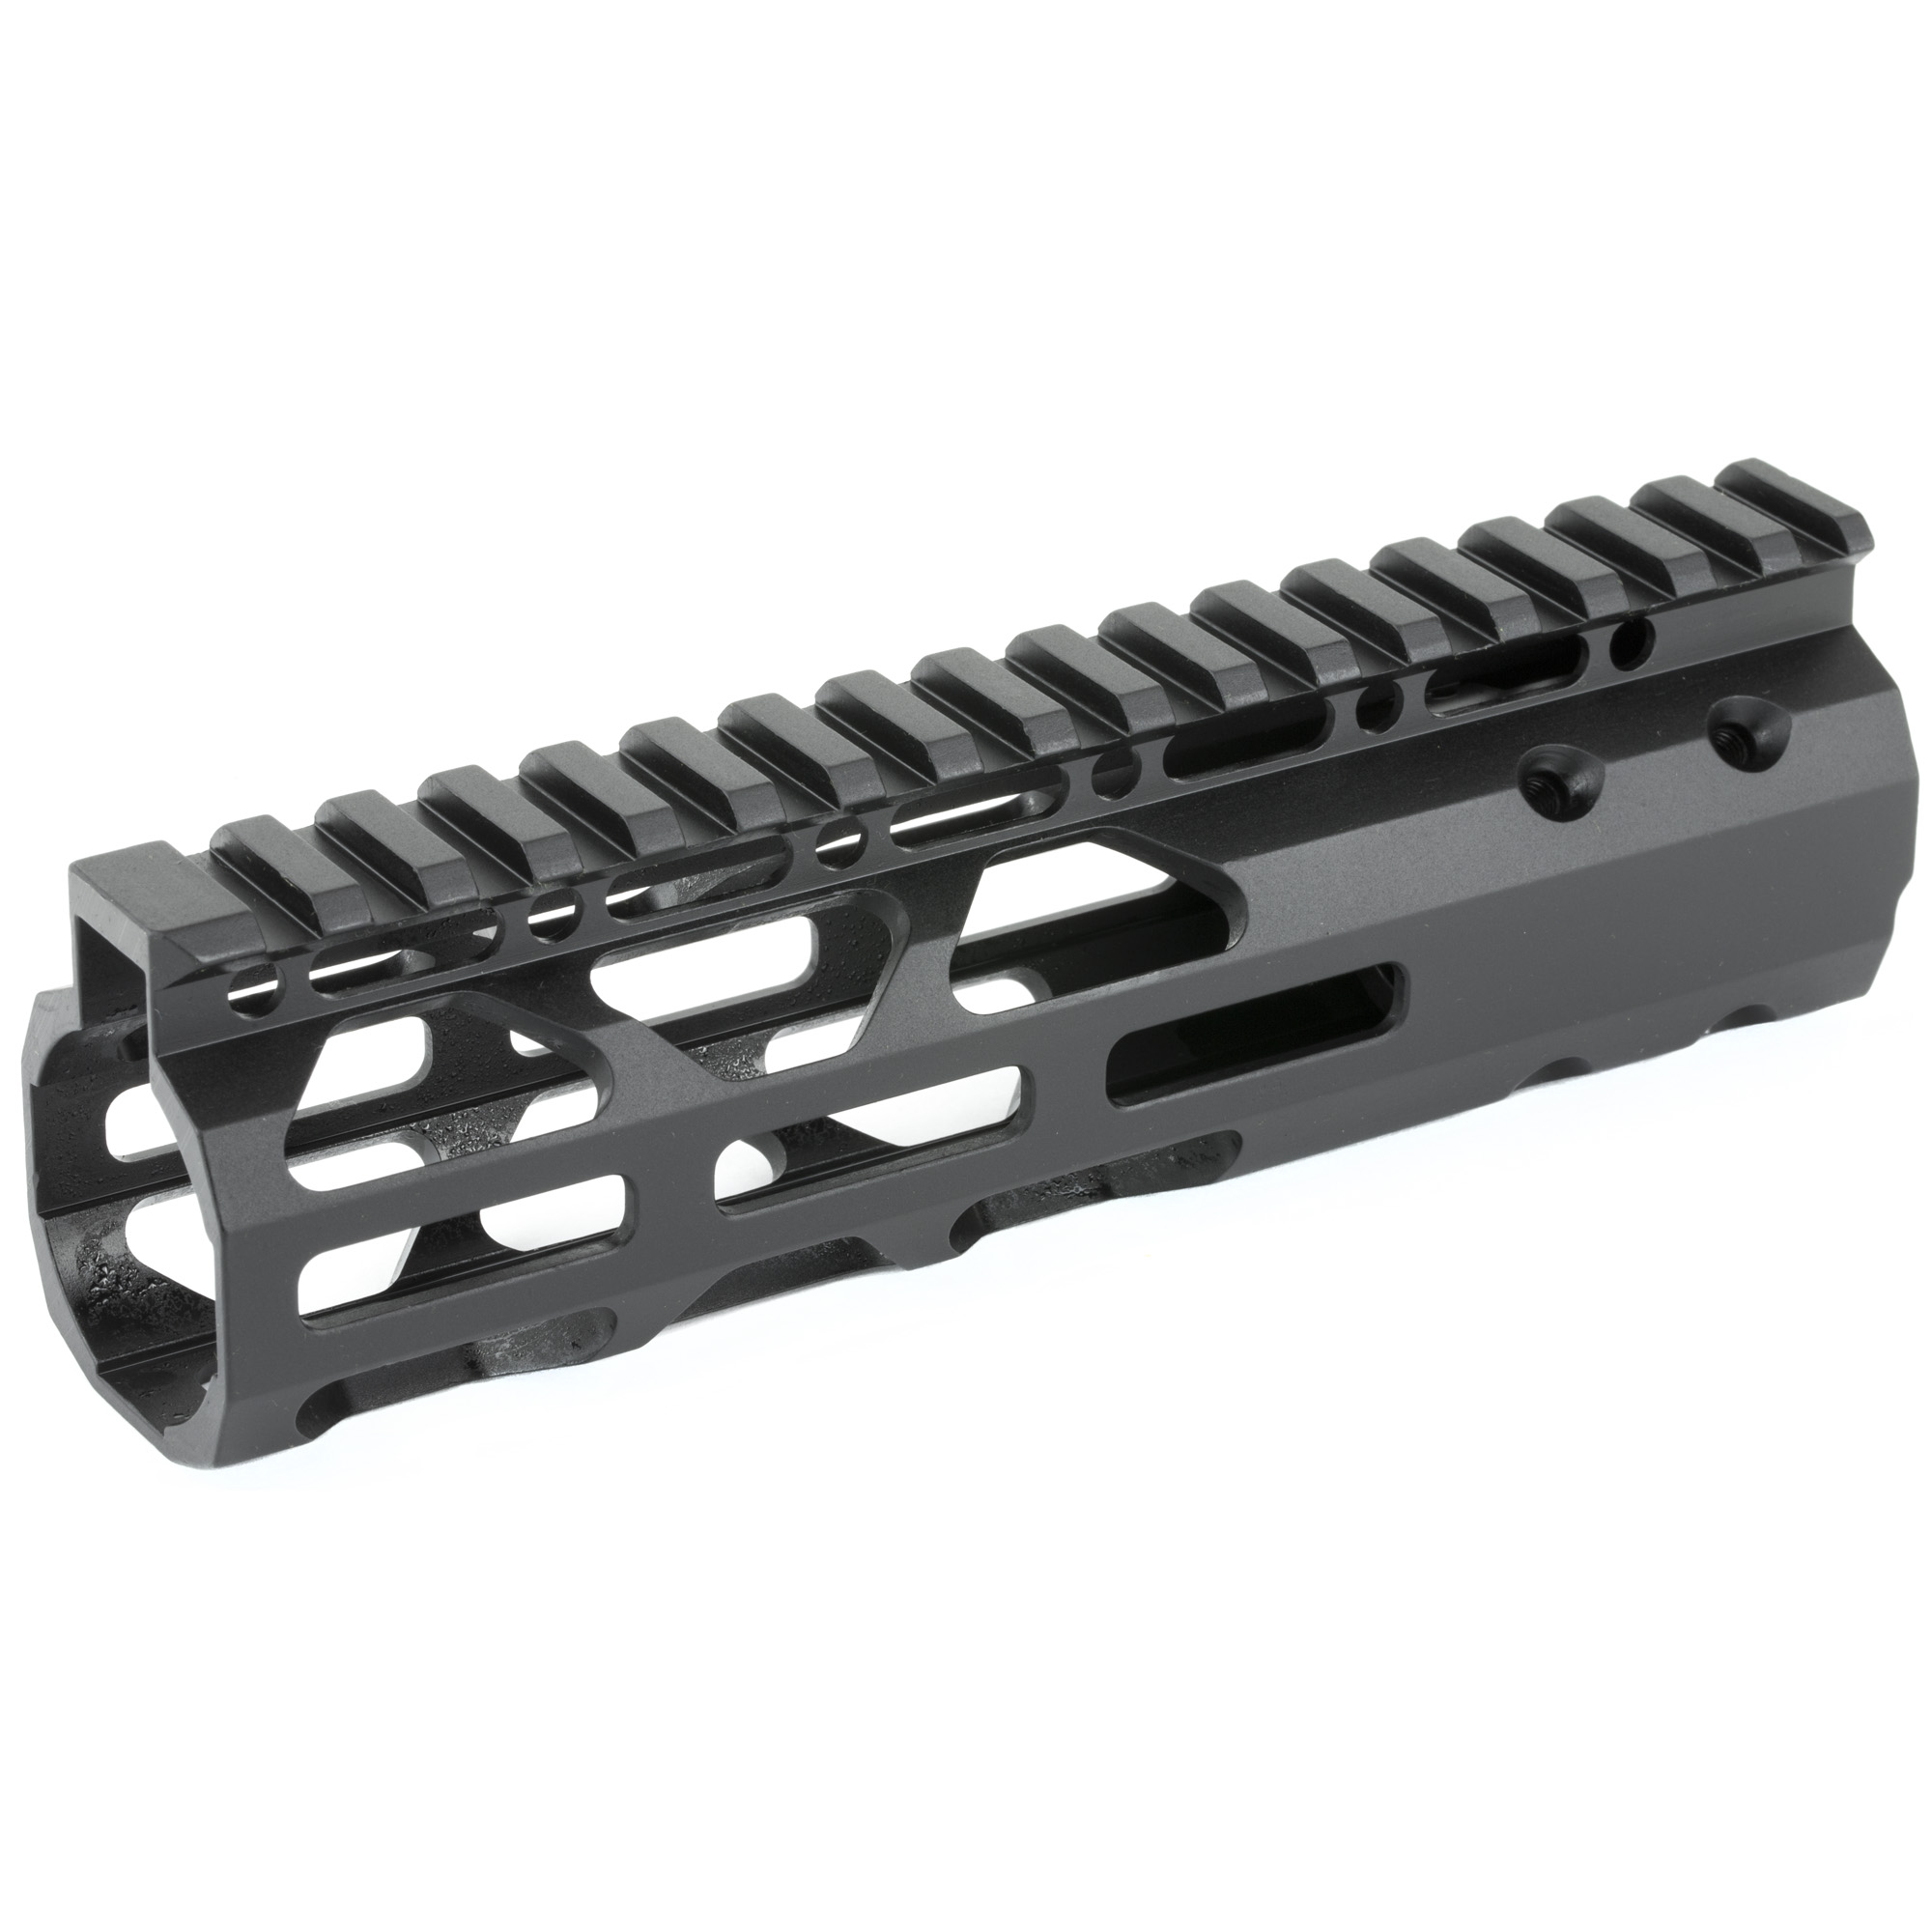 "Adv Tech 7"" Ff Slm Hand Guard Blk"